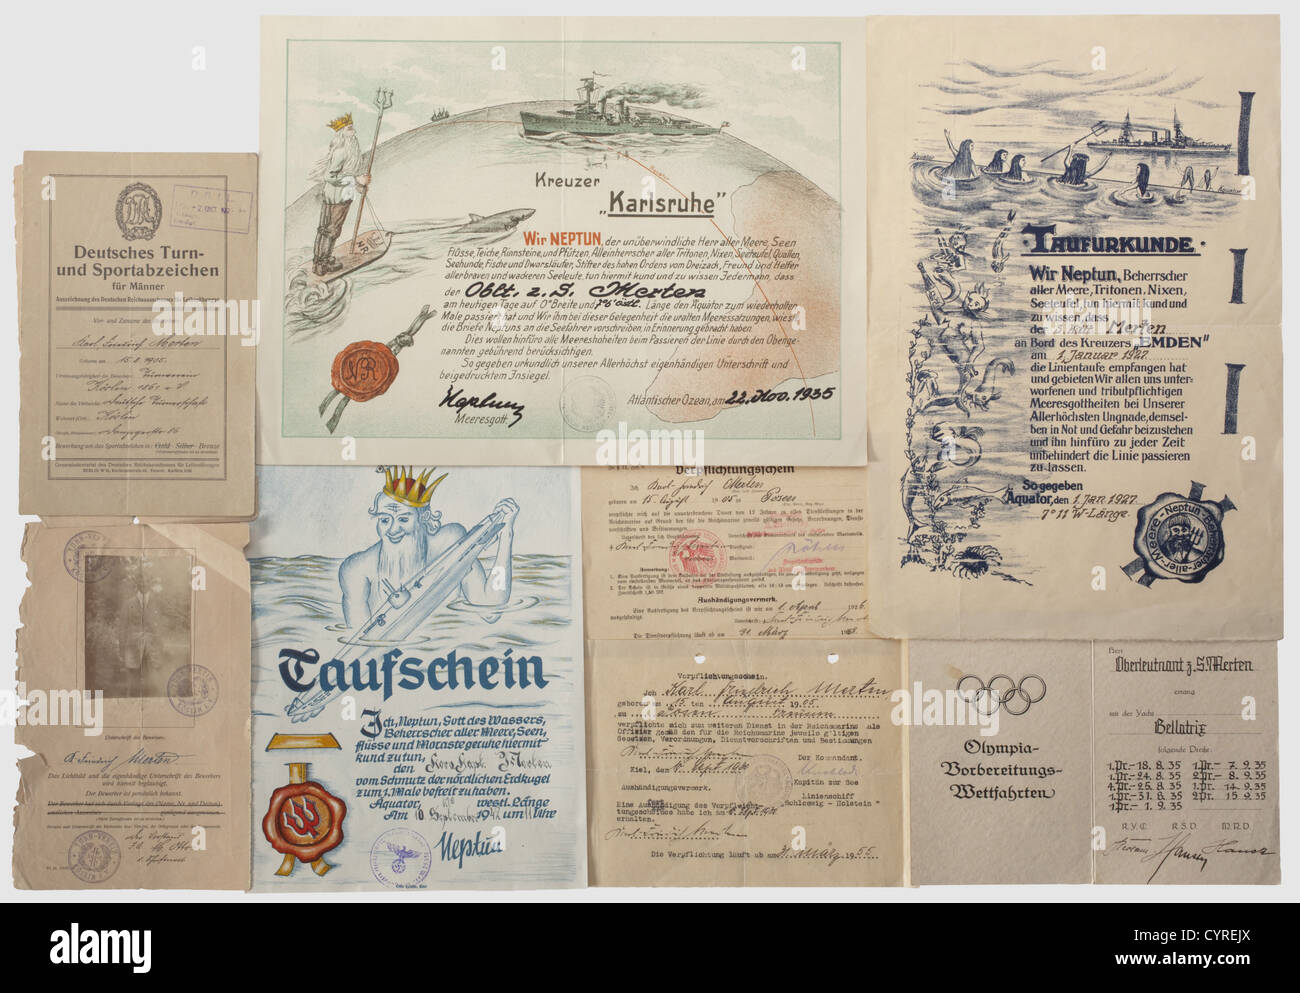 Certificates of enlisting and of crossing-the-line ceremonies, certificates of enlisting and of crossing-the-line - Stock Image